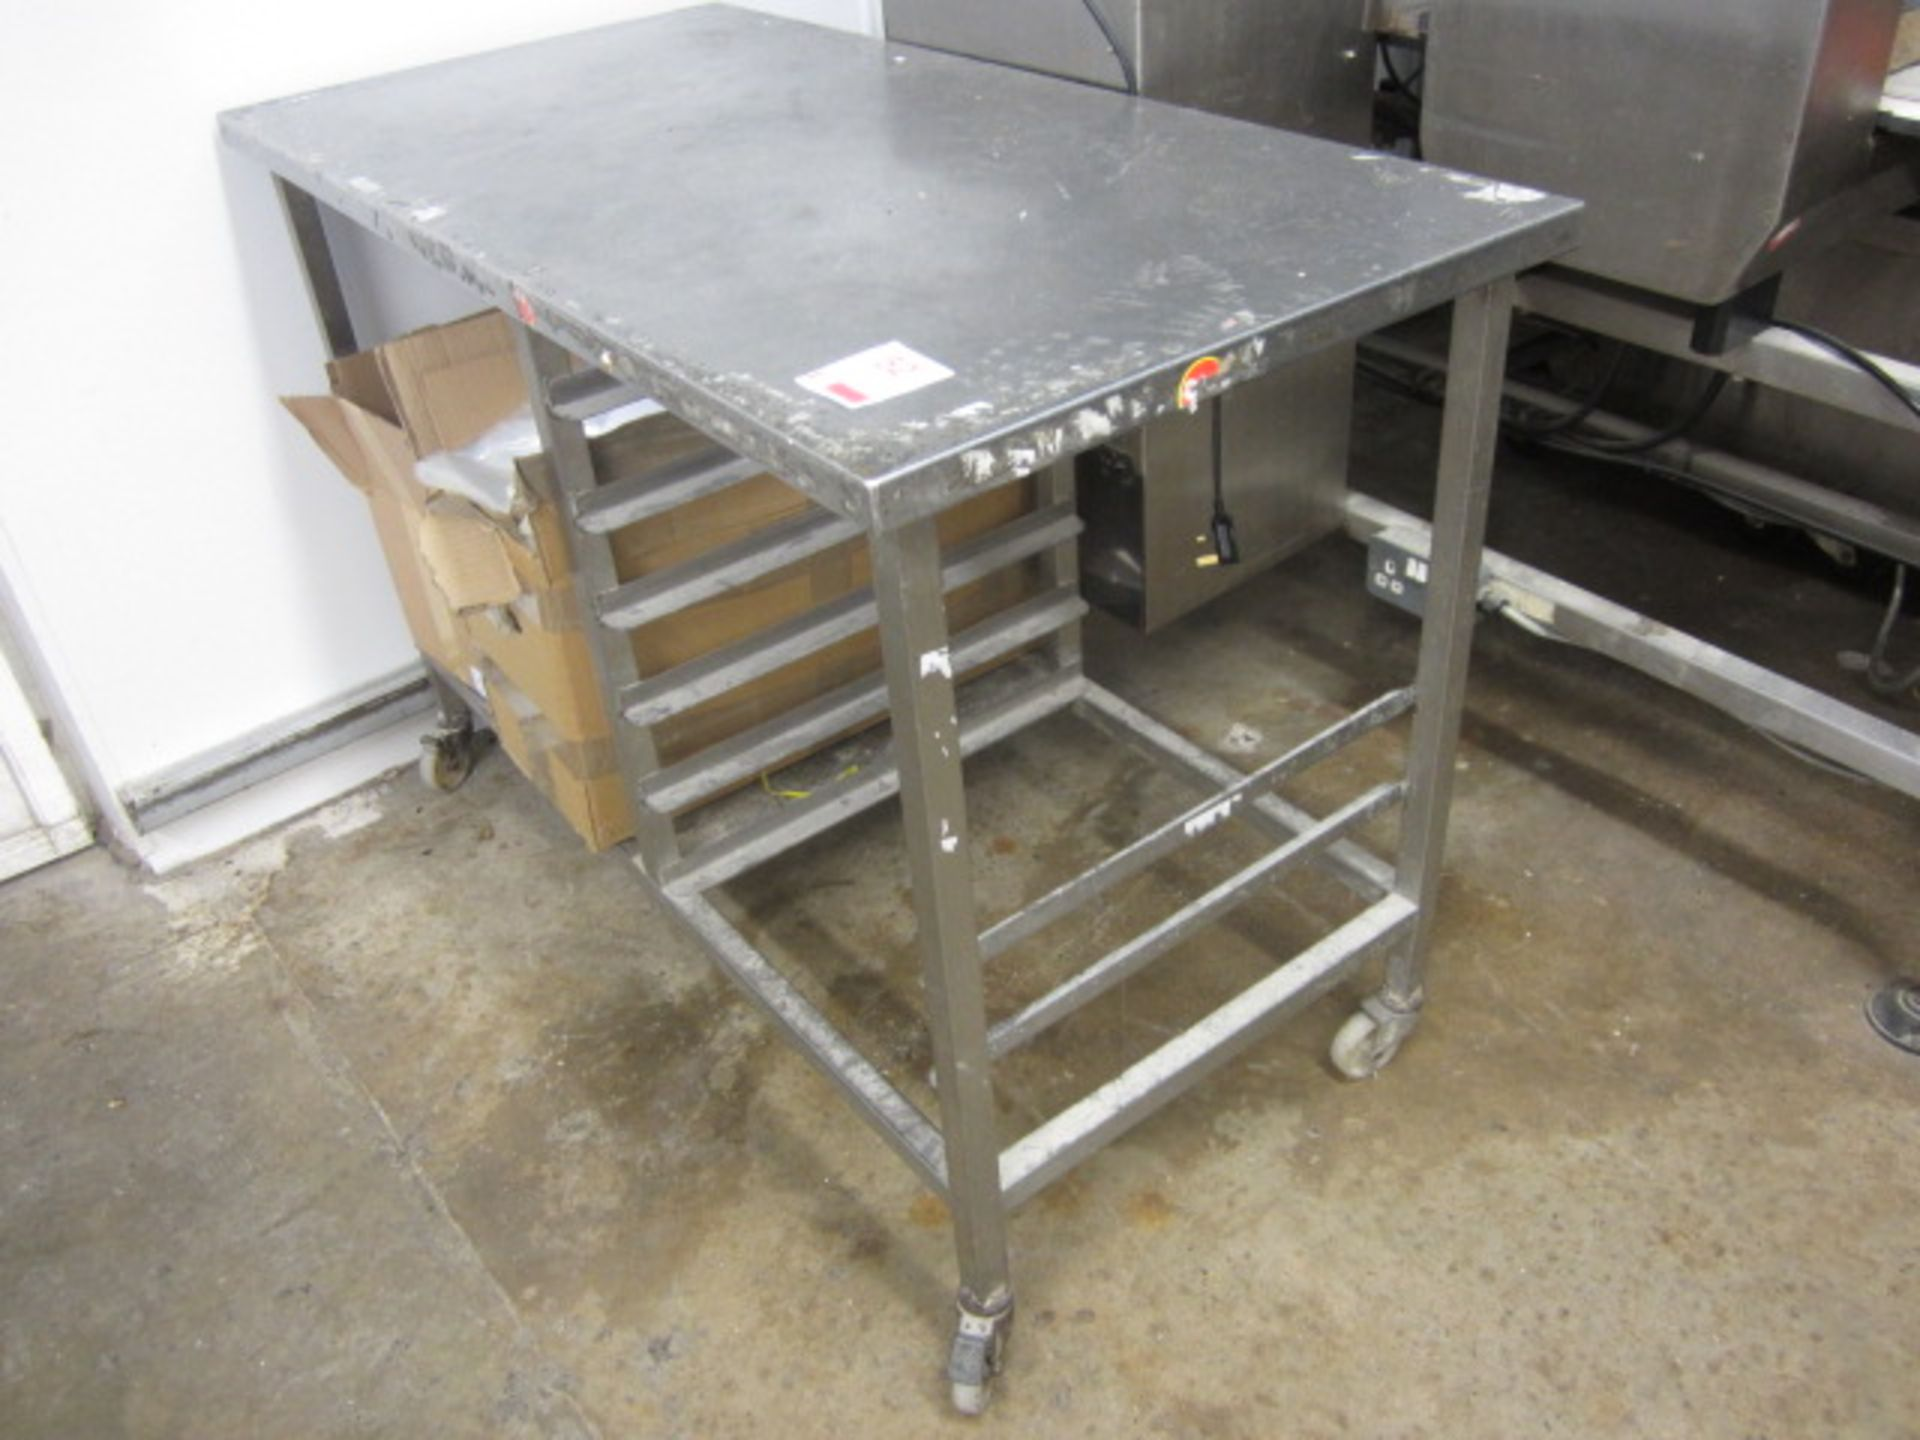 Lot 52 - Stainless steel mobile food preparation work surface with undercounter shelving rack. approx. 1200 x